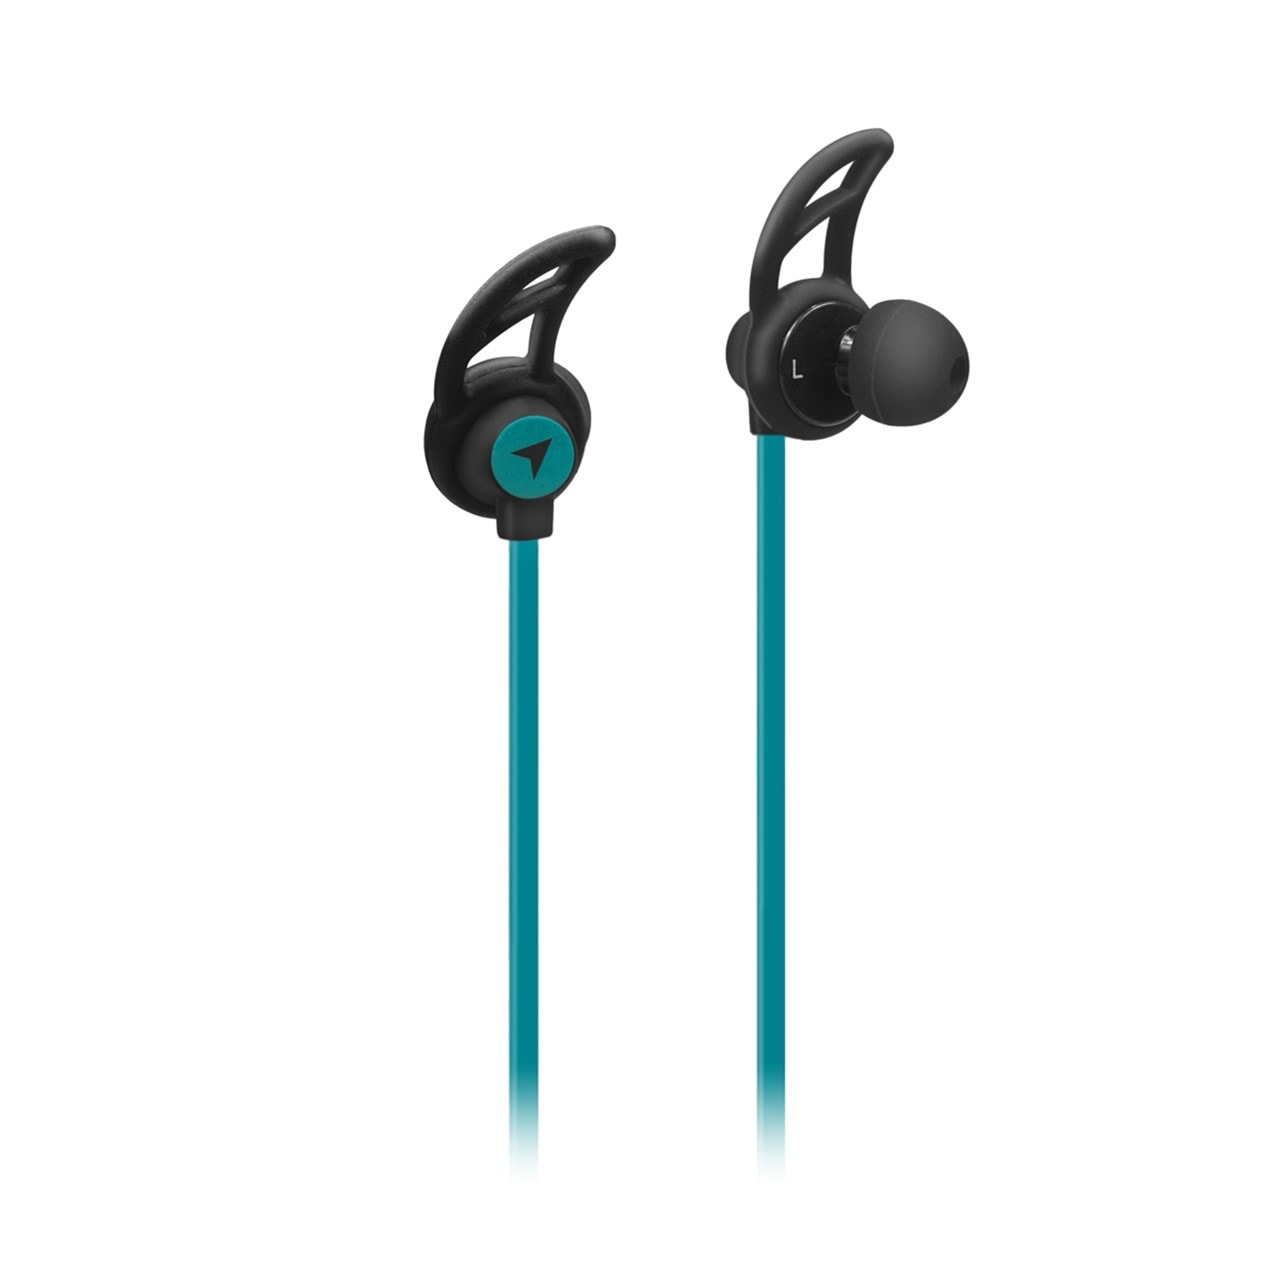 Roam Sports Pro Teal Bluetooth Earphones - 3